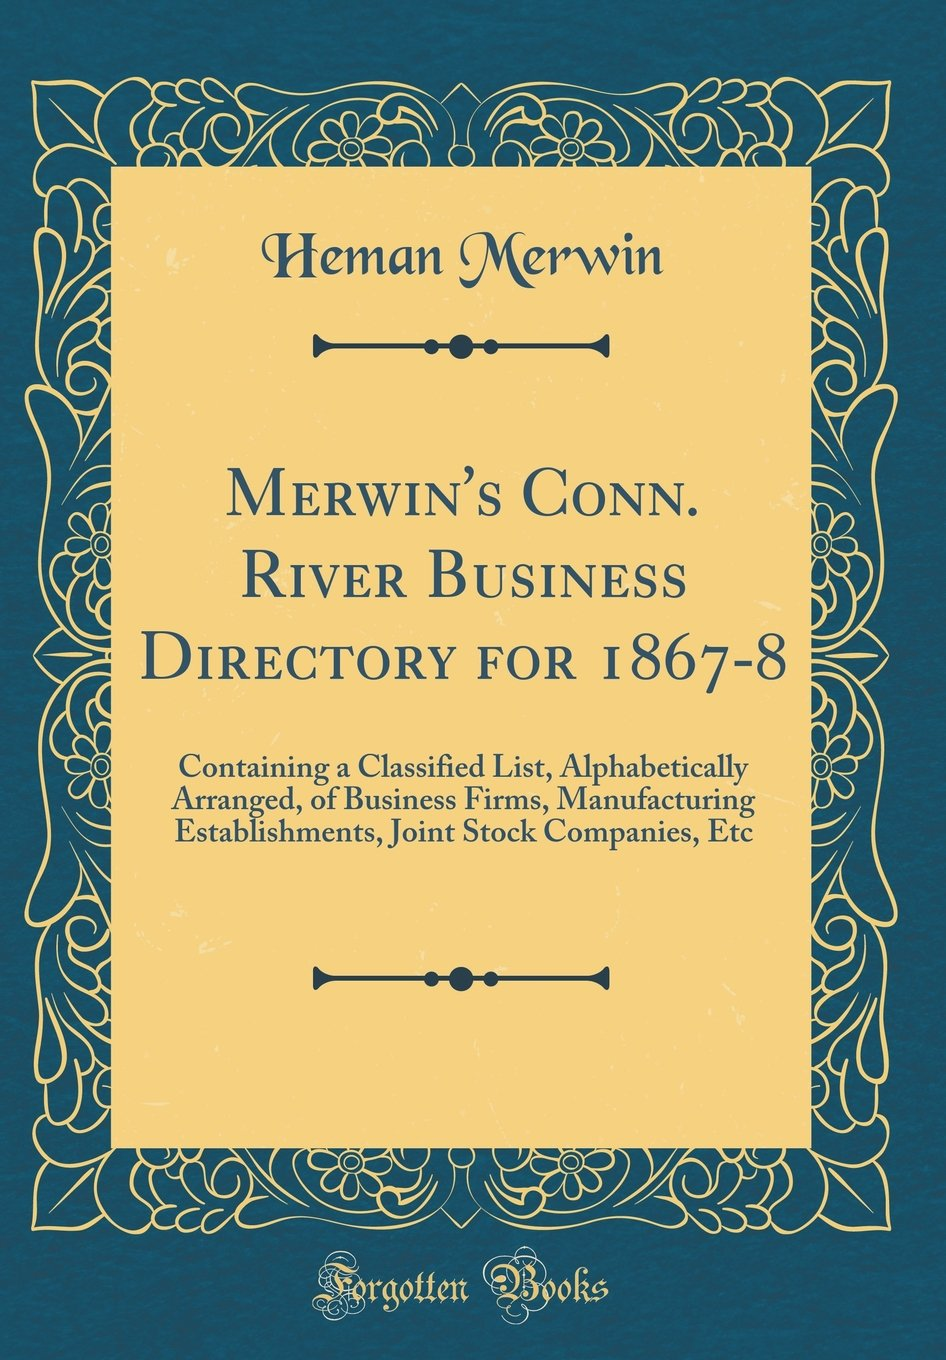 Download Merwin's Conn. River Business Directory for 1867-8: Containing a Classified List, Alphabetically Arranged, of Business Firms, Manufacturing Establishments, Joint Stock Companies, Etc (Classic Reprint) pdf epub